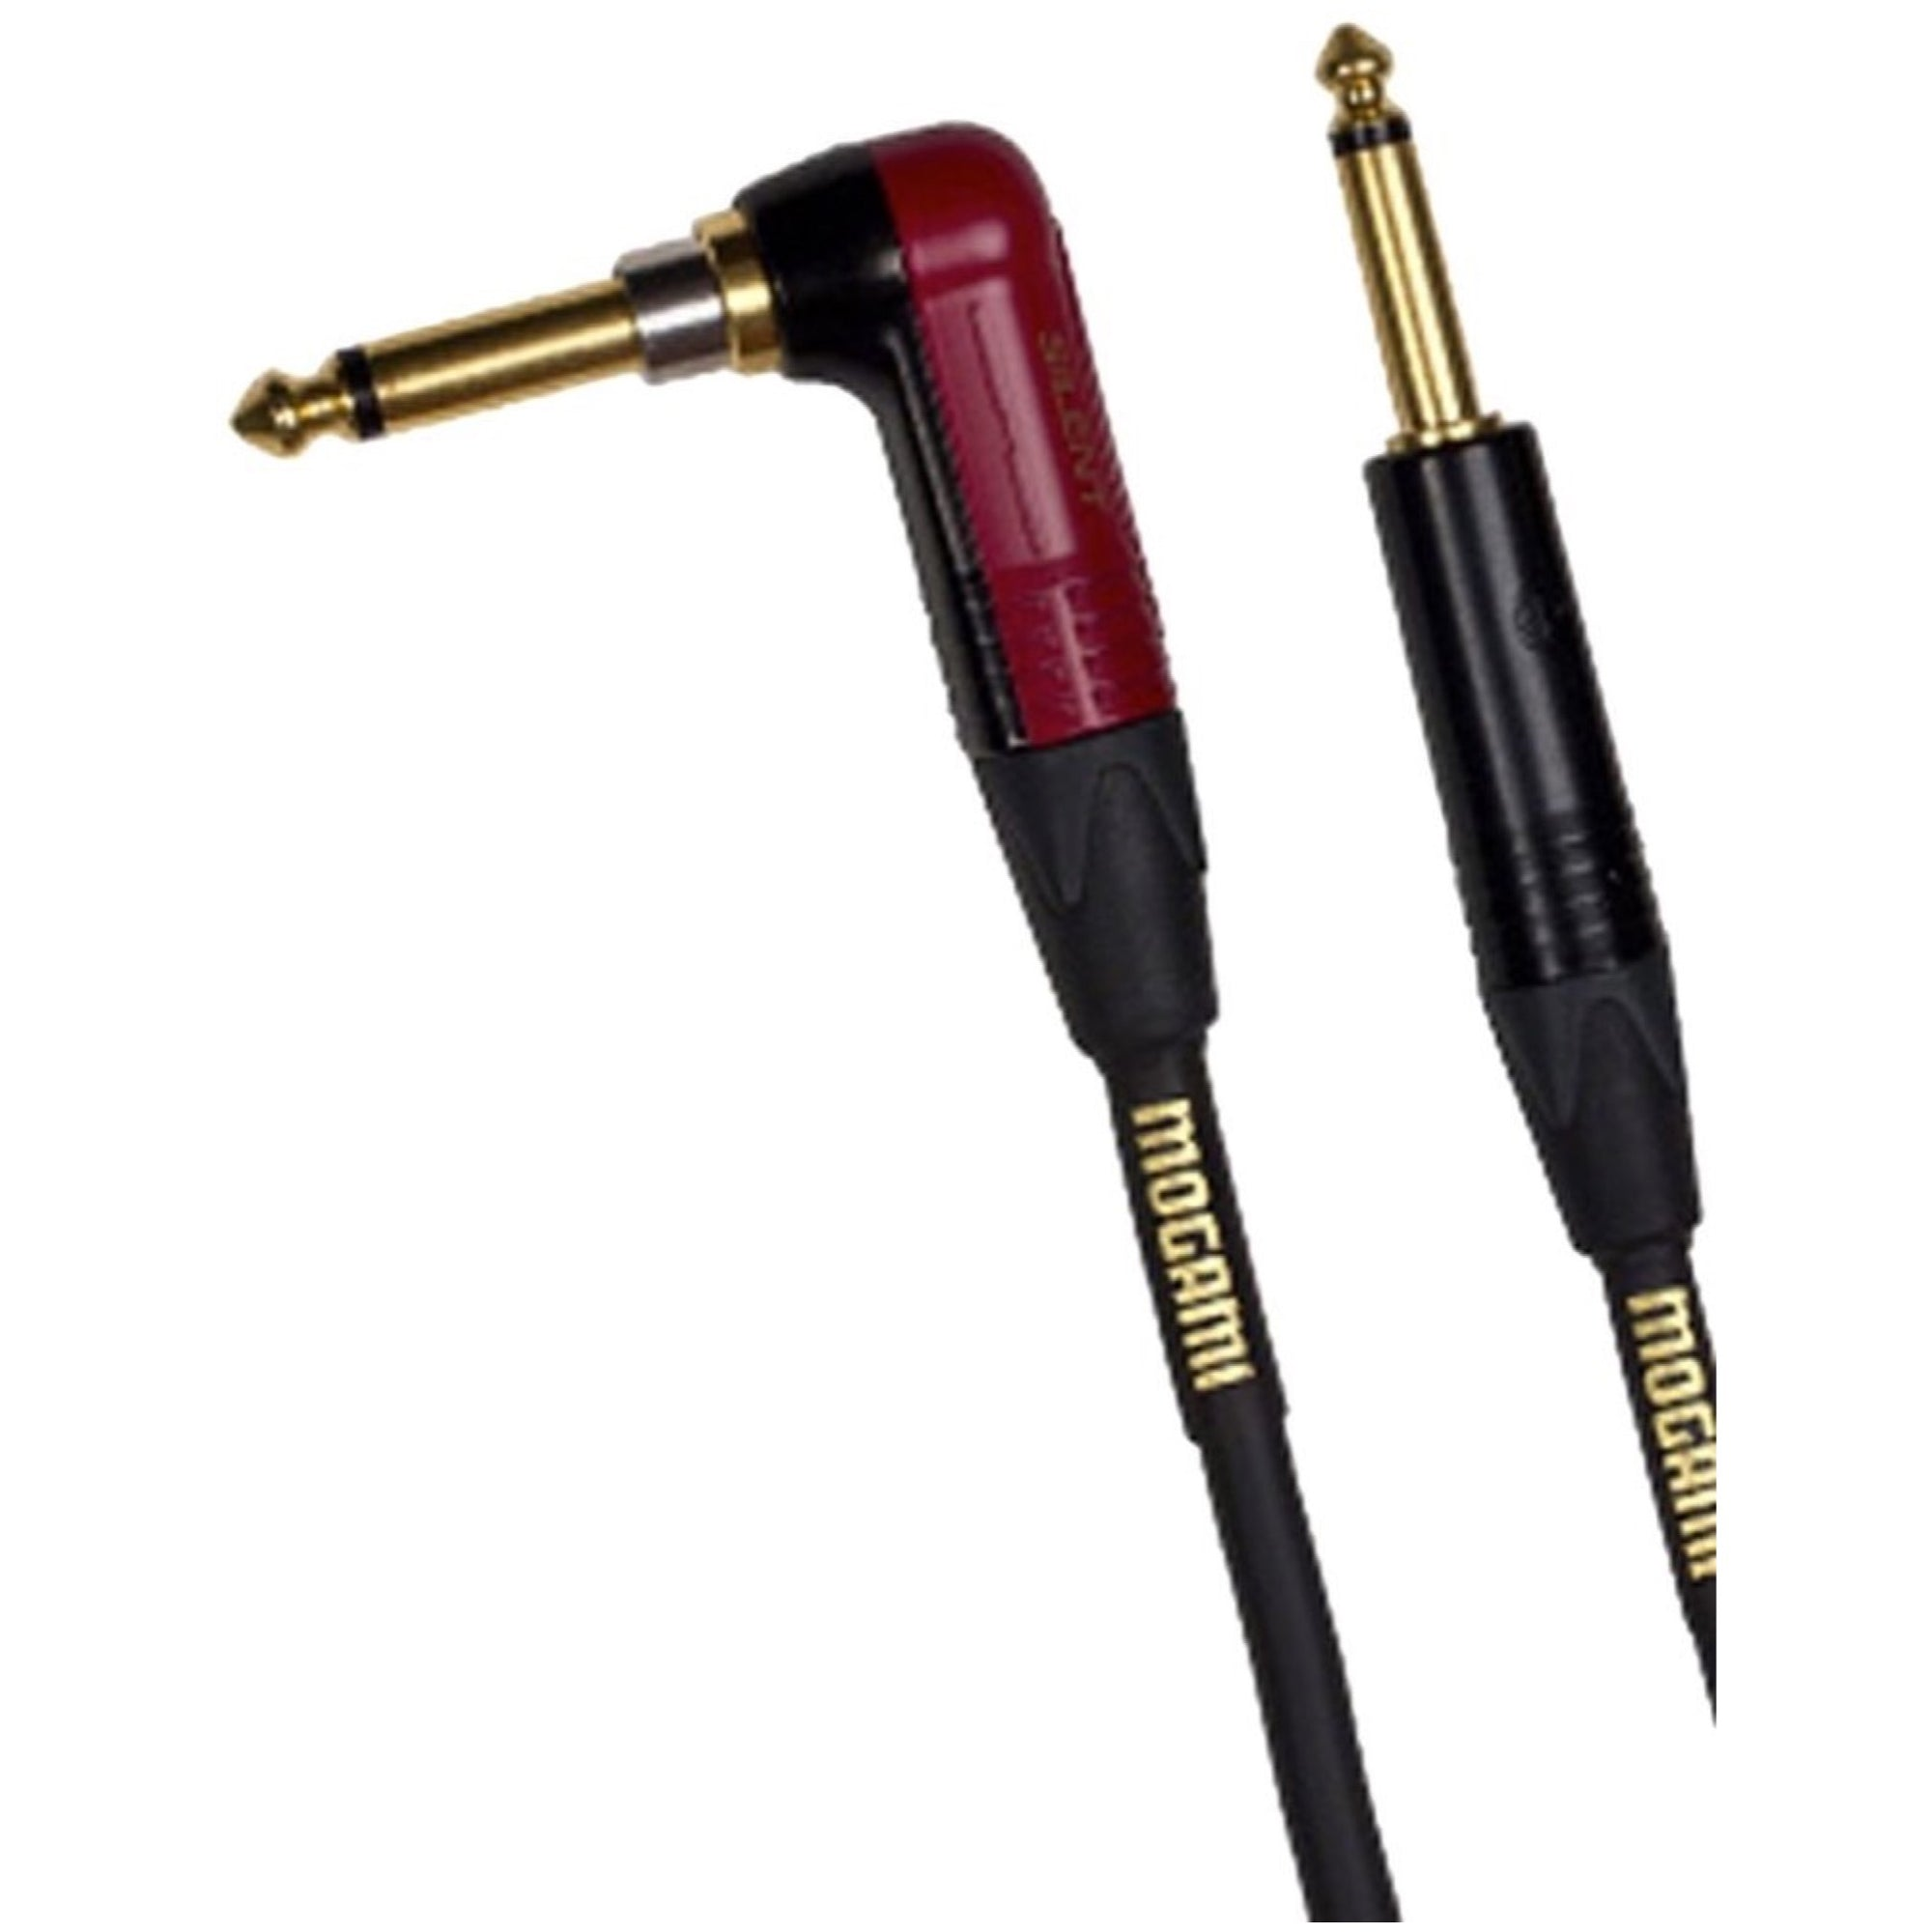 Mogami Gold Instrument Silent R Cable (Straight to Right Angle End), 18'